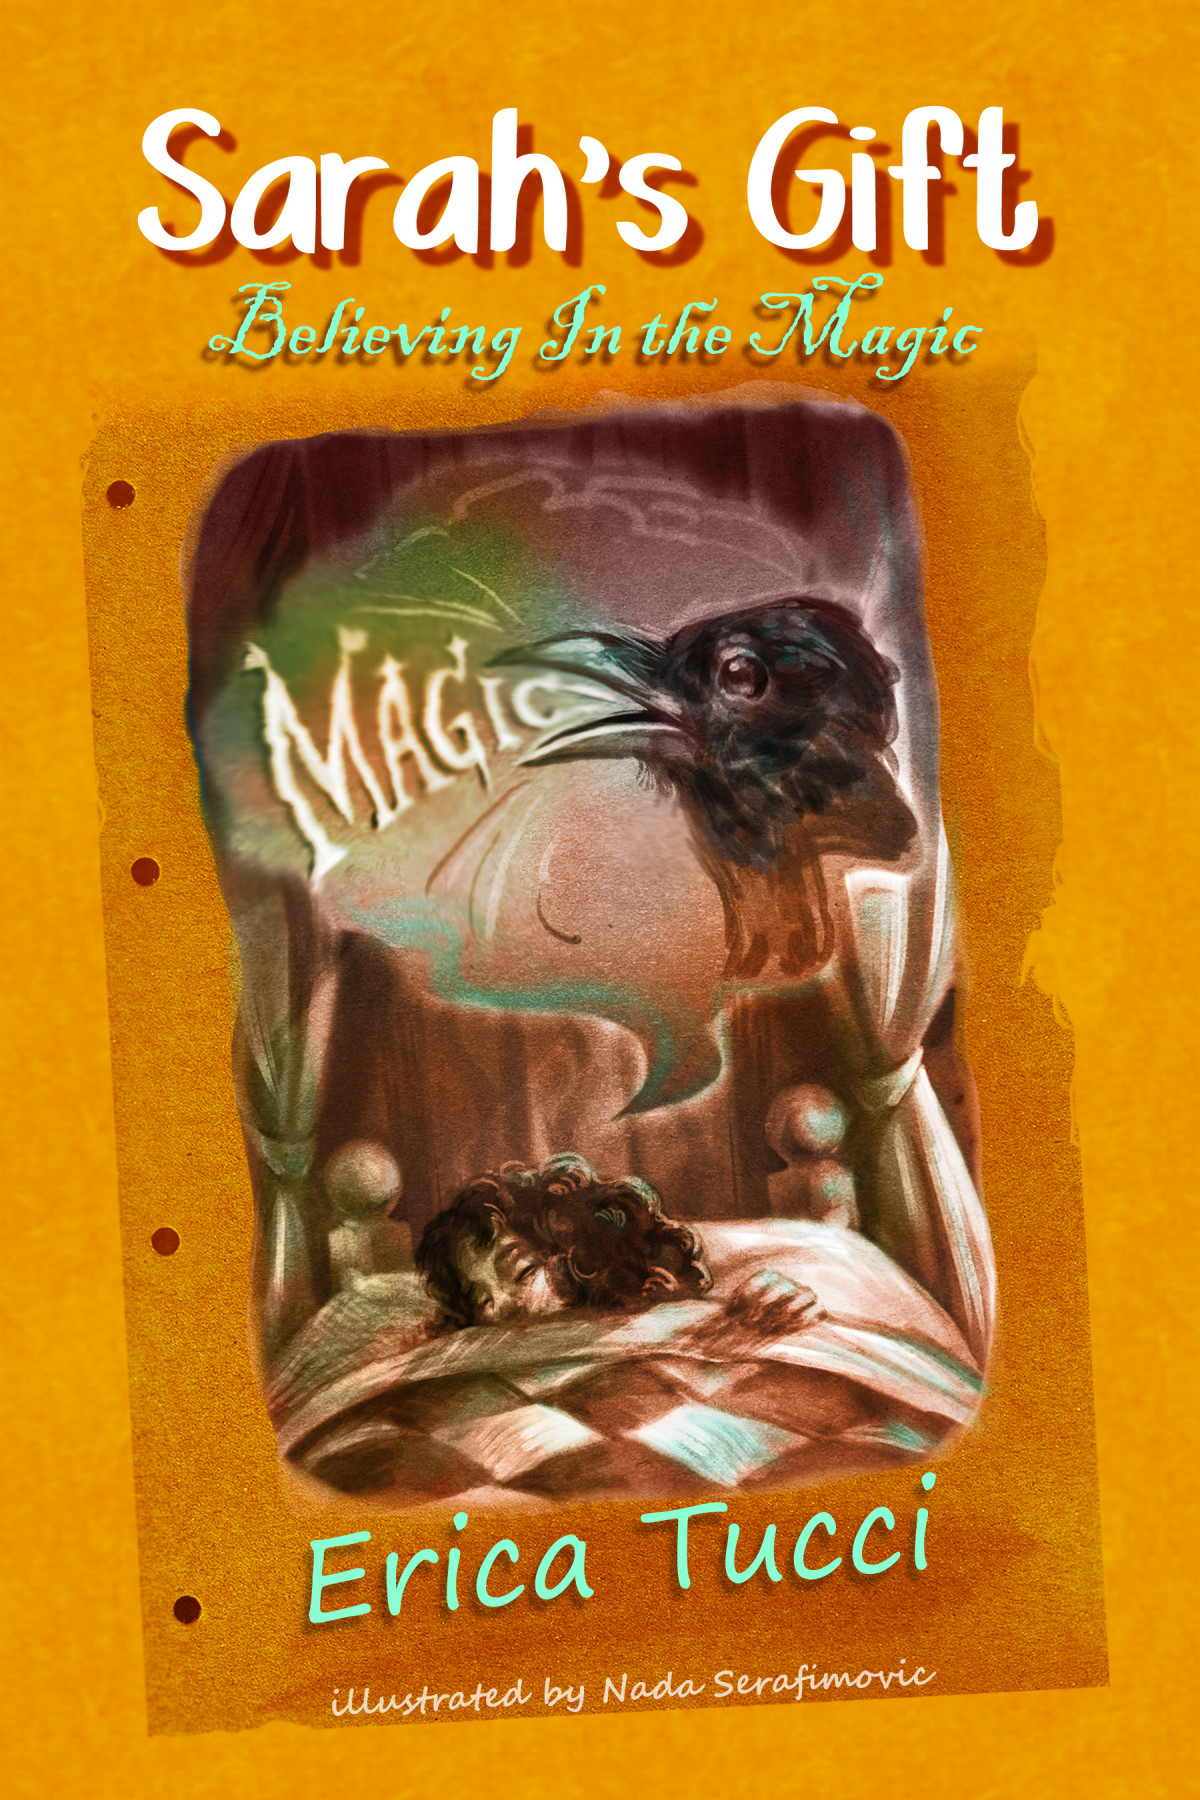 Believing In the Magic, 2nd book of Sarah's Gift